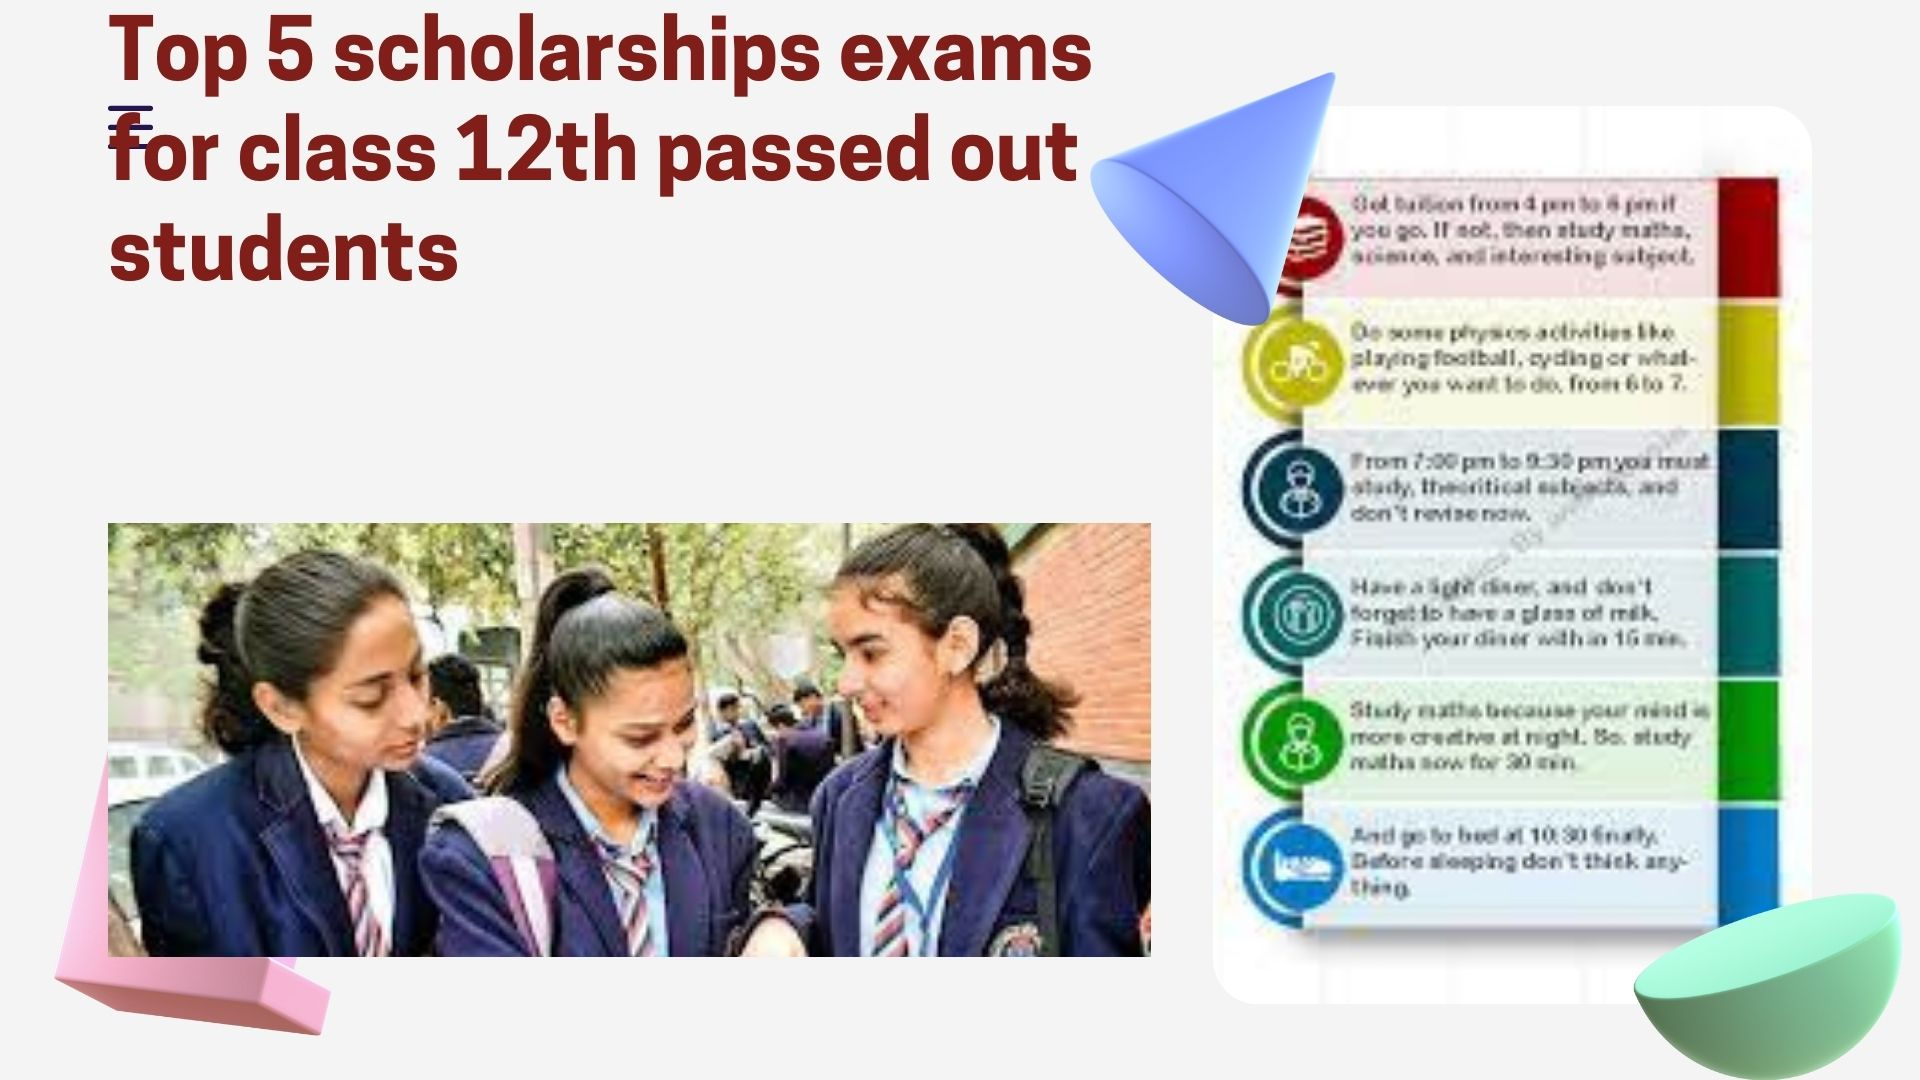 Top 5 scholarships exams for class 12th passed out students